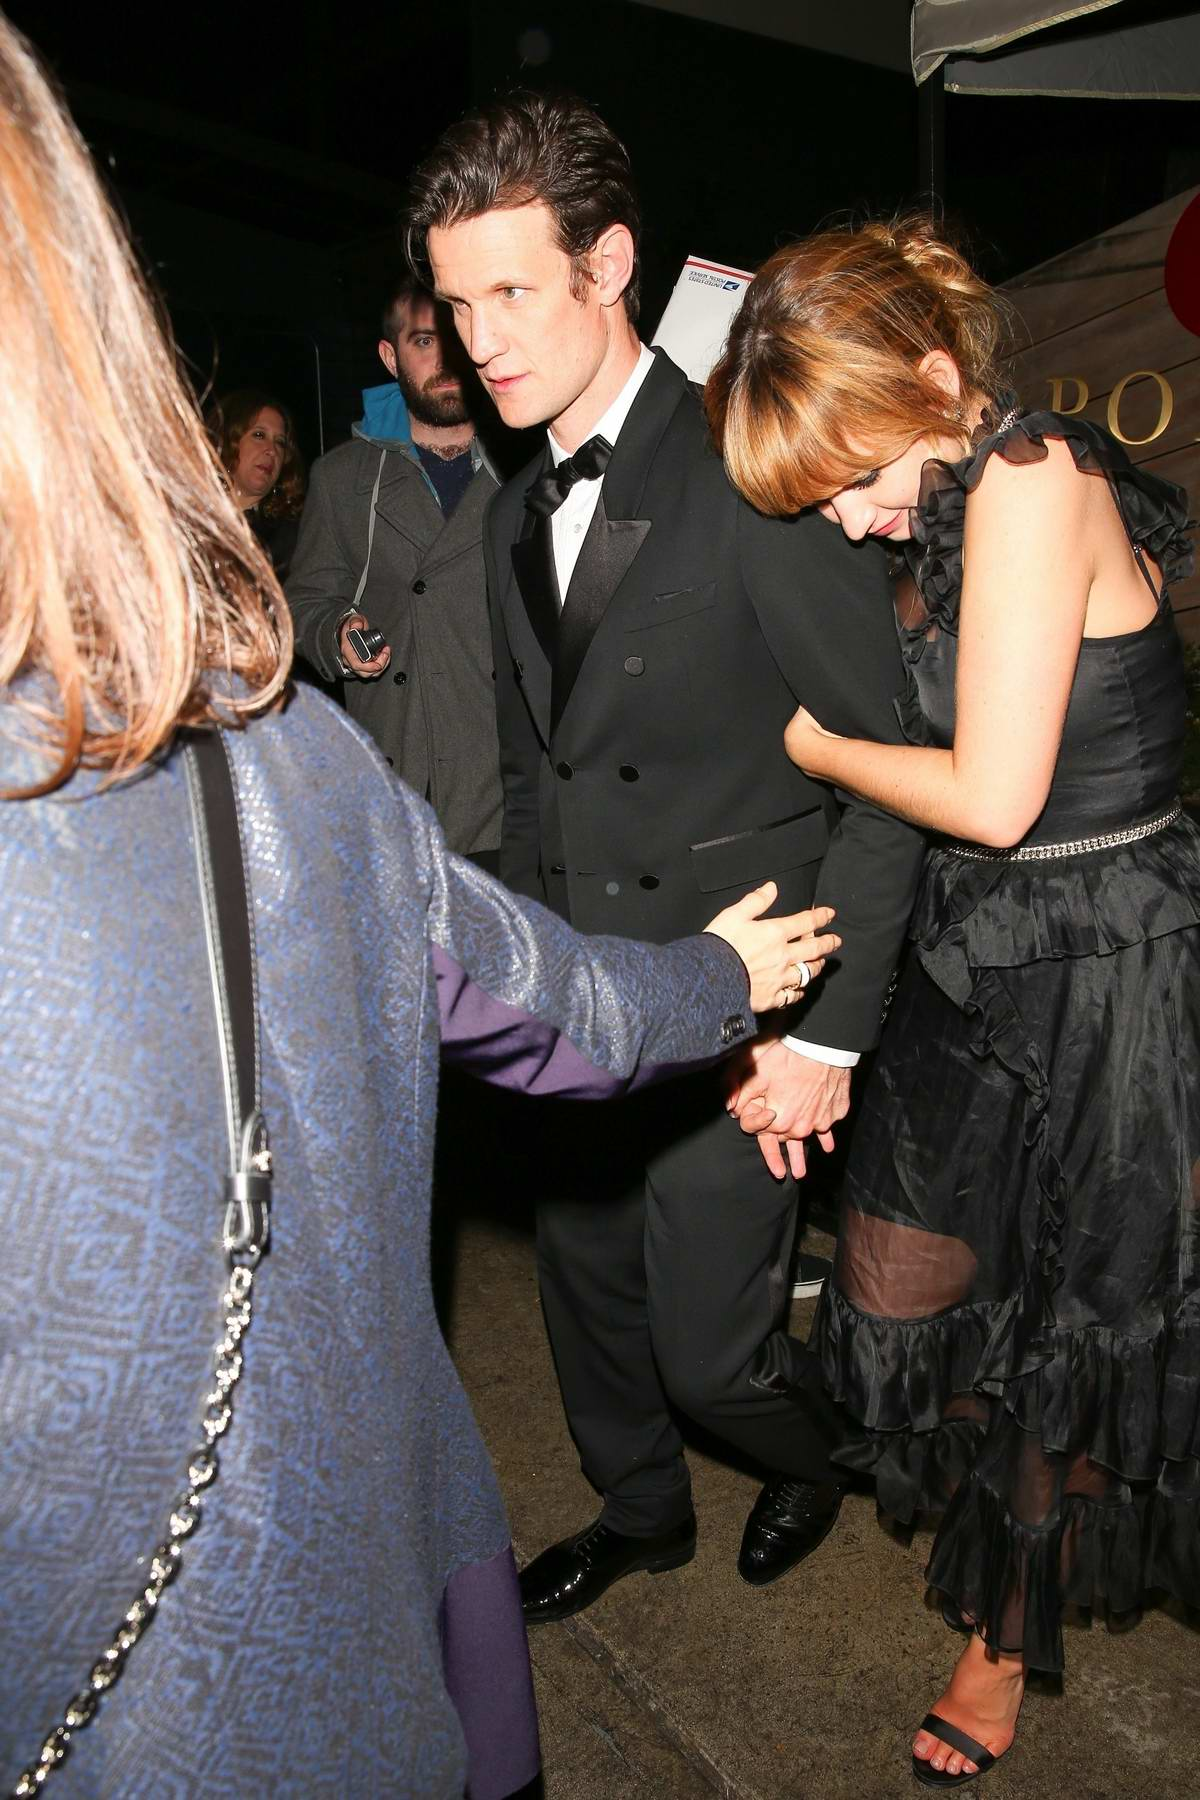 Lily James and Matt Smith leaving Golden Globes after-party at Poppy in West Hollywood, Los Angeles